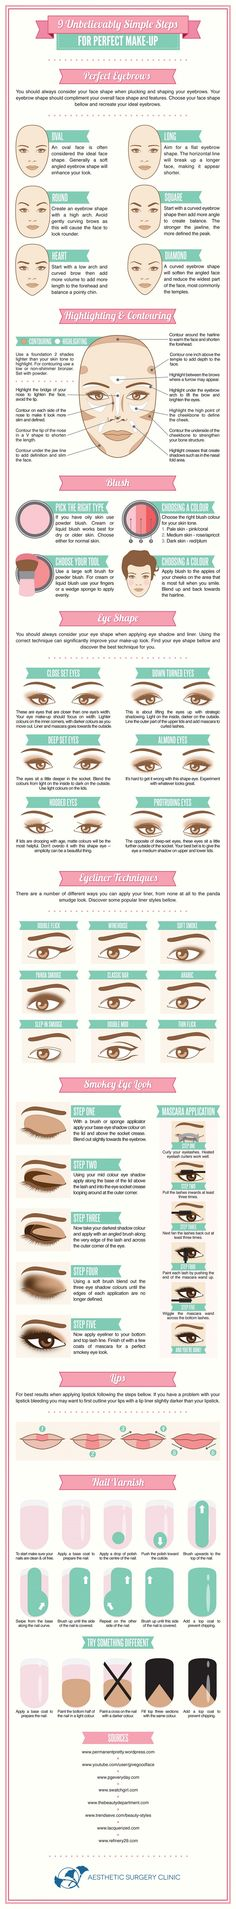 9 Unbelievably Simple Steps for Perfect Makeup - 13 Best Makeup Tutorials and Infographics for Beginners